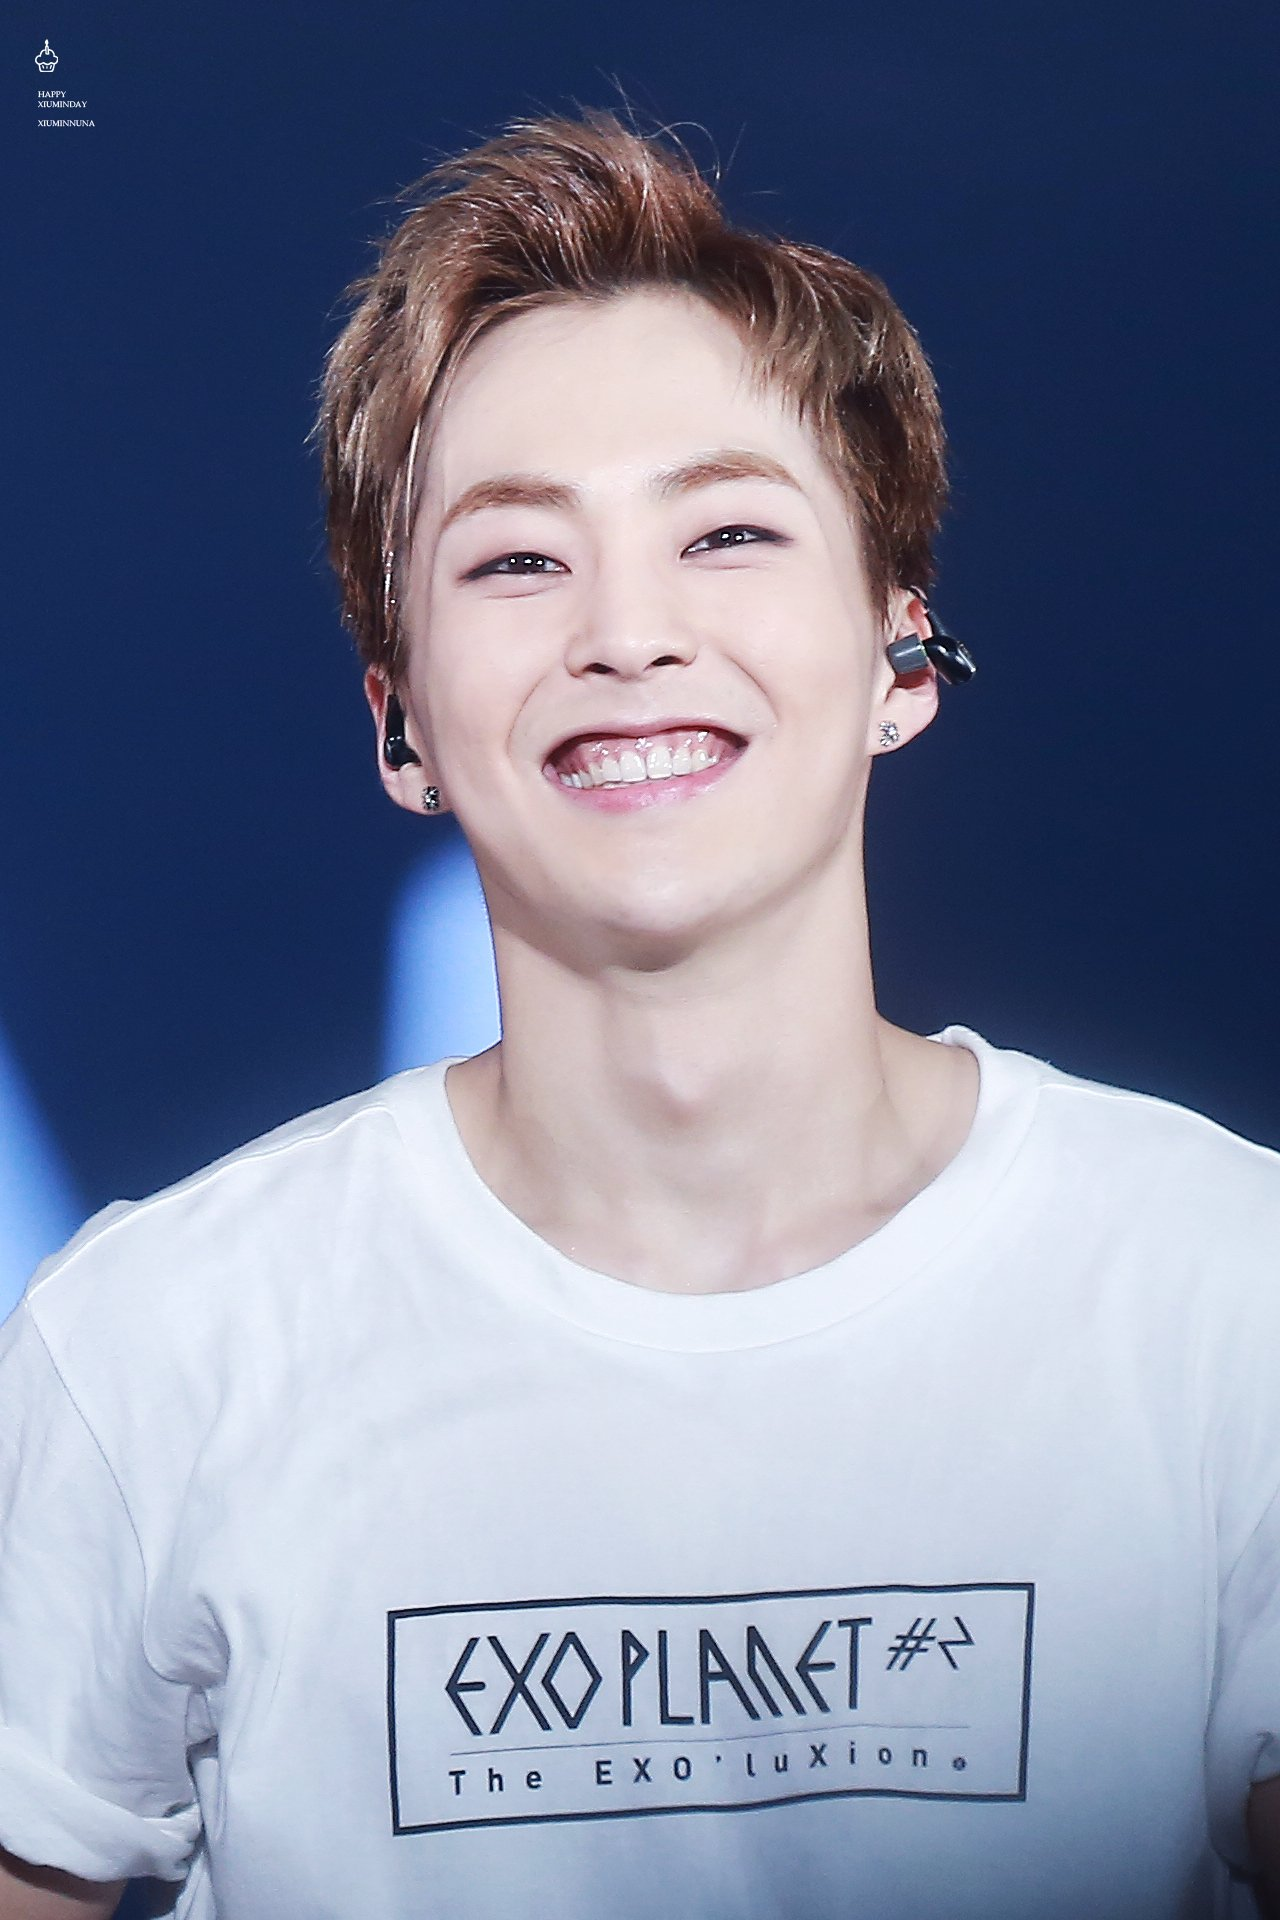 Exo S Xiumin Has Gone From Cute To Studly In Just 5 Years